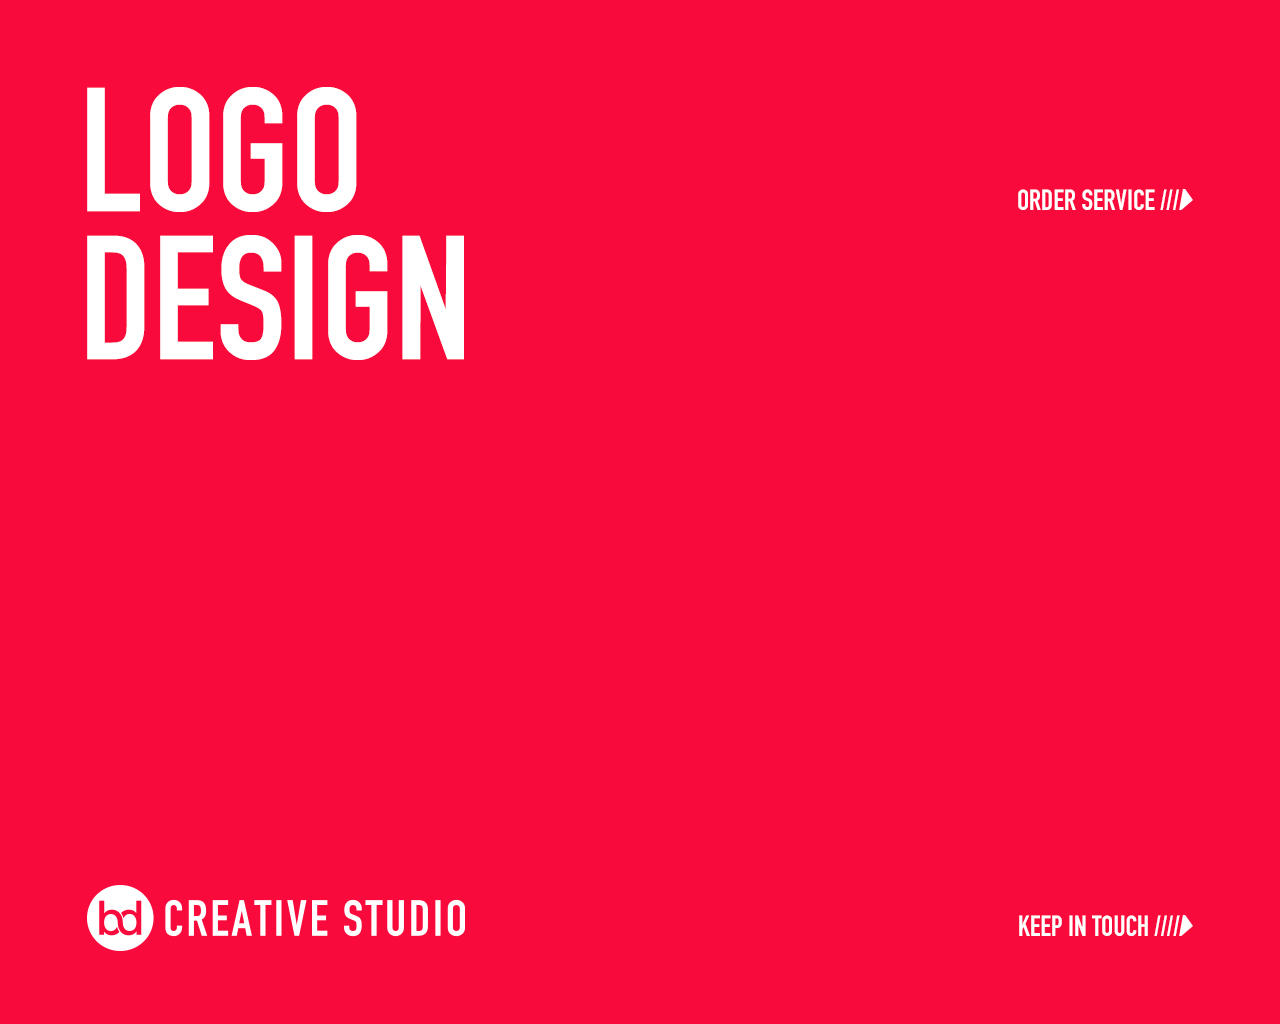 High-Quality Logo Design by bdCREATIVESTUDIO - 71588